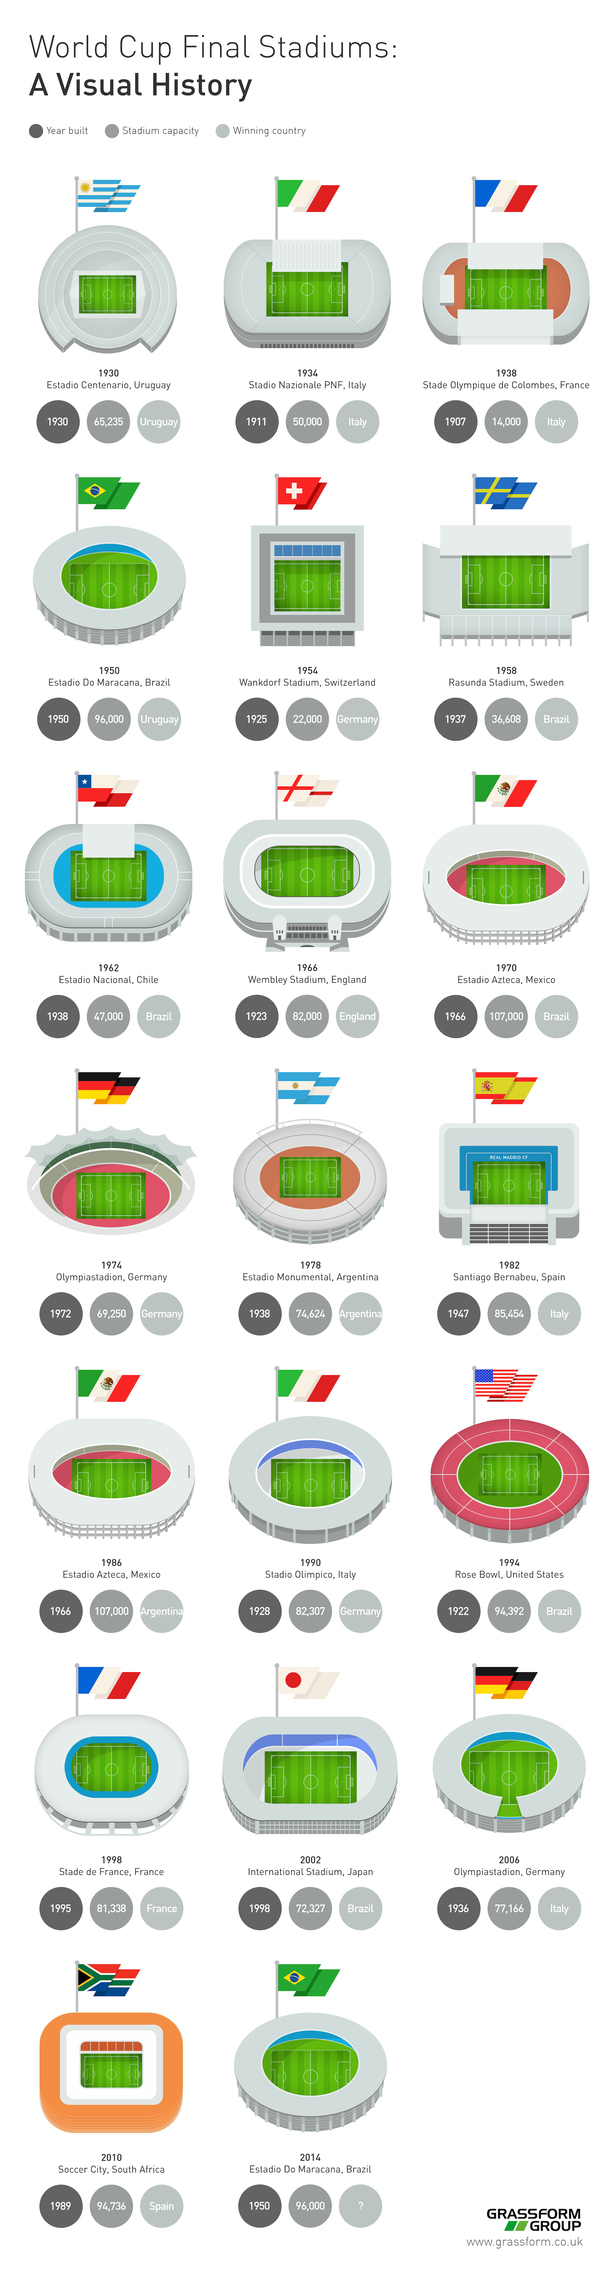 history of world cup stadiums